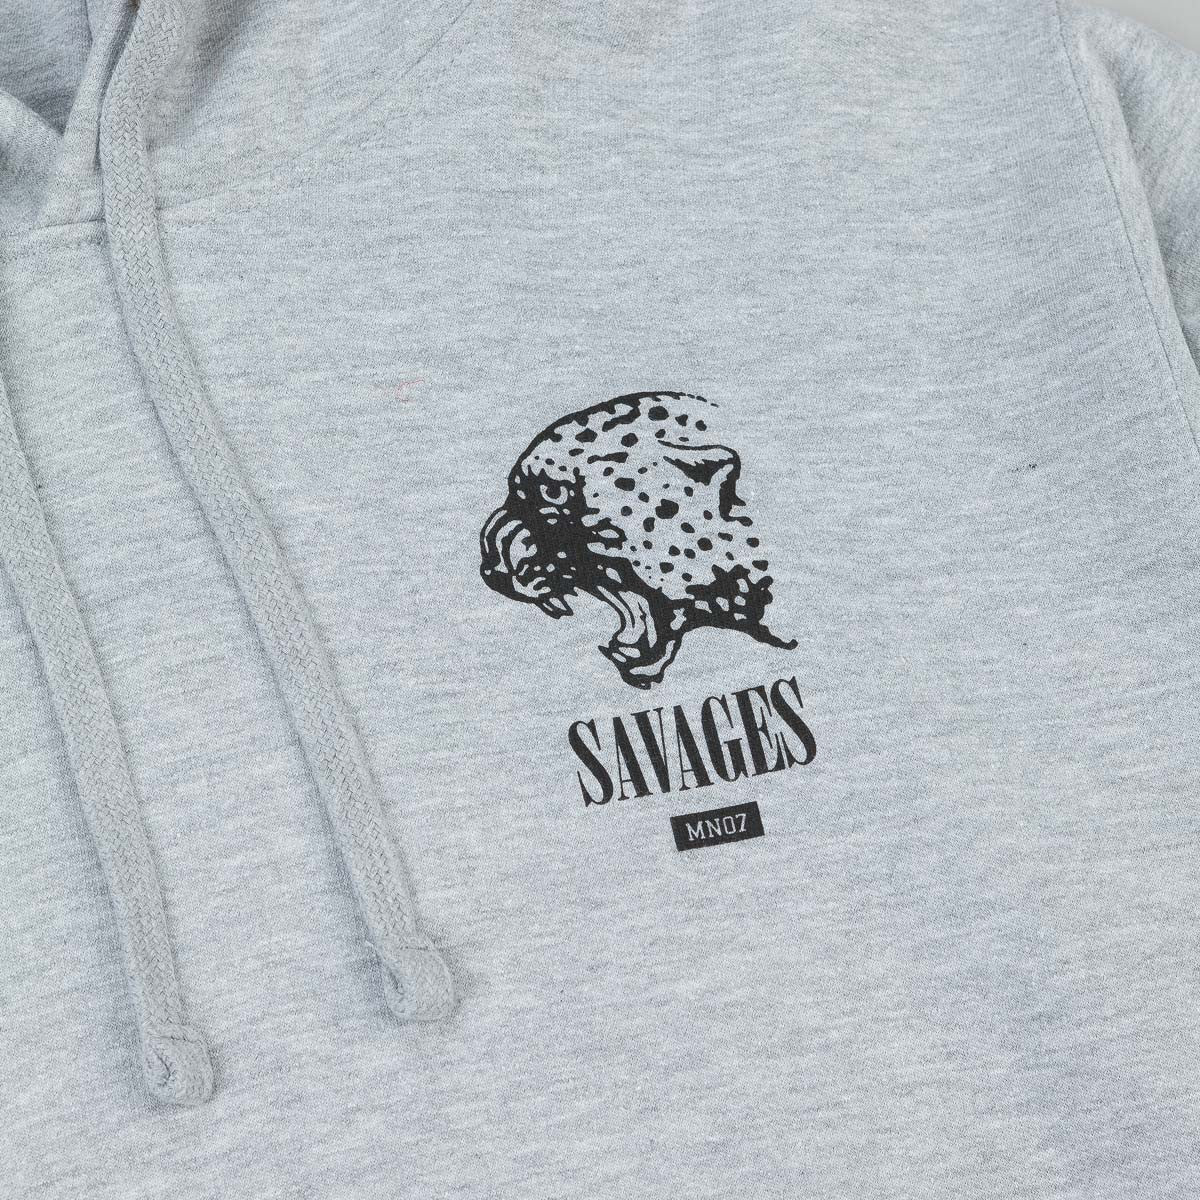 MN07 Savages III Hooded Sweatshirt - Grey Heather